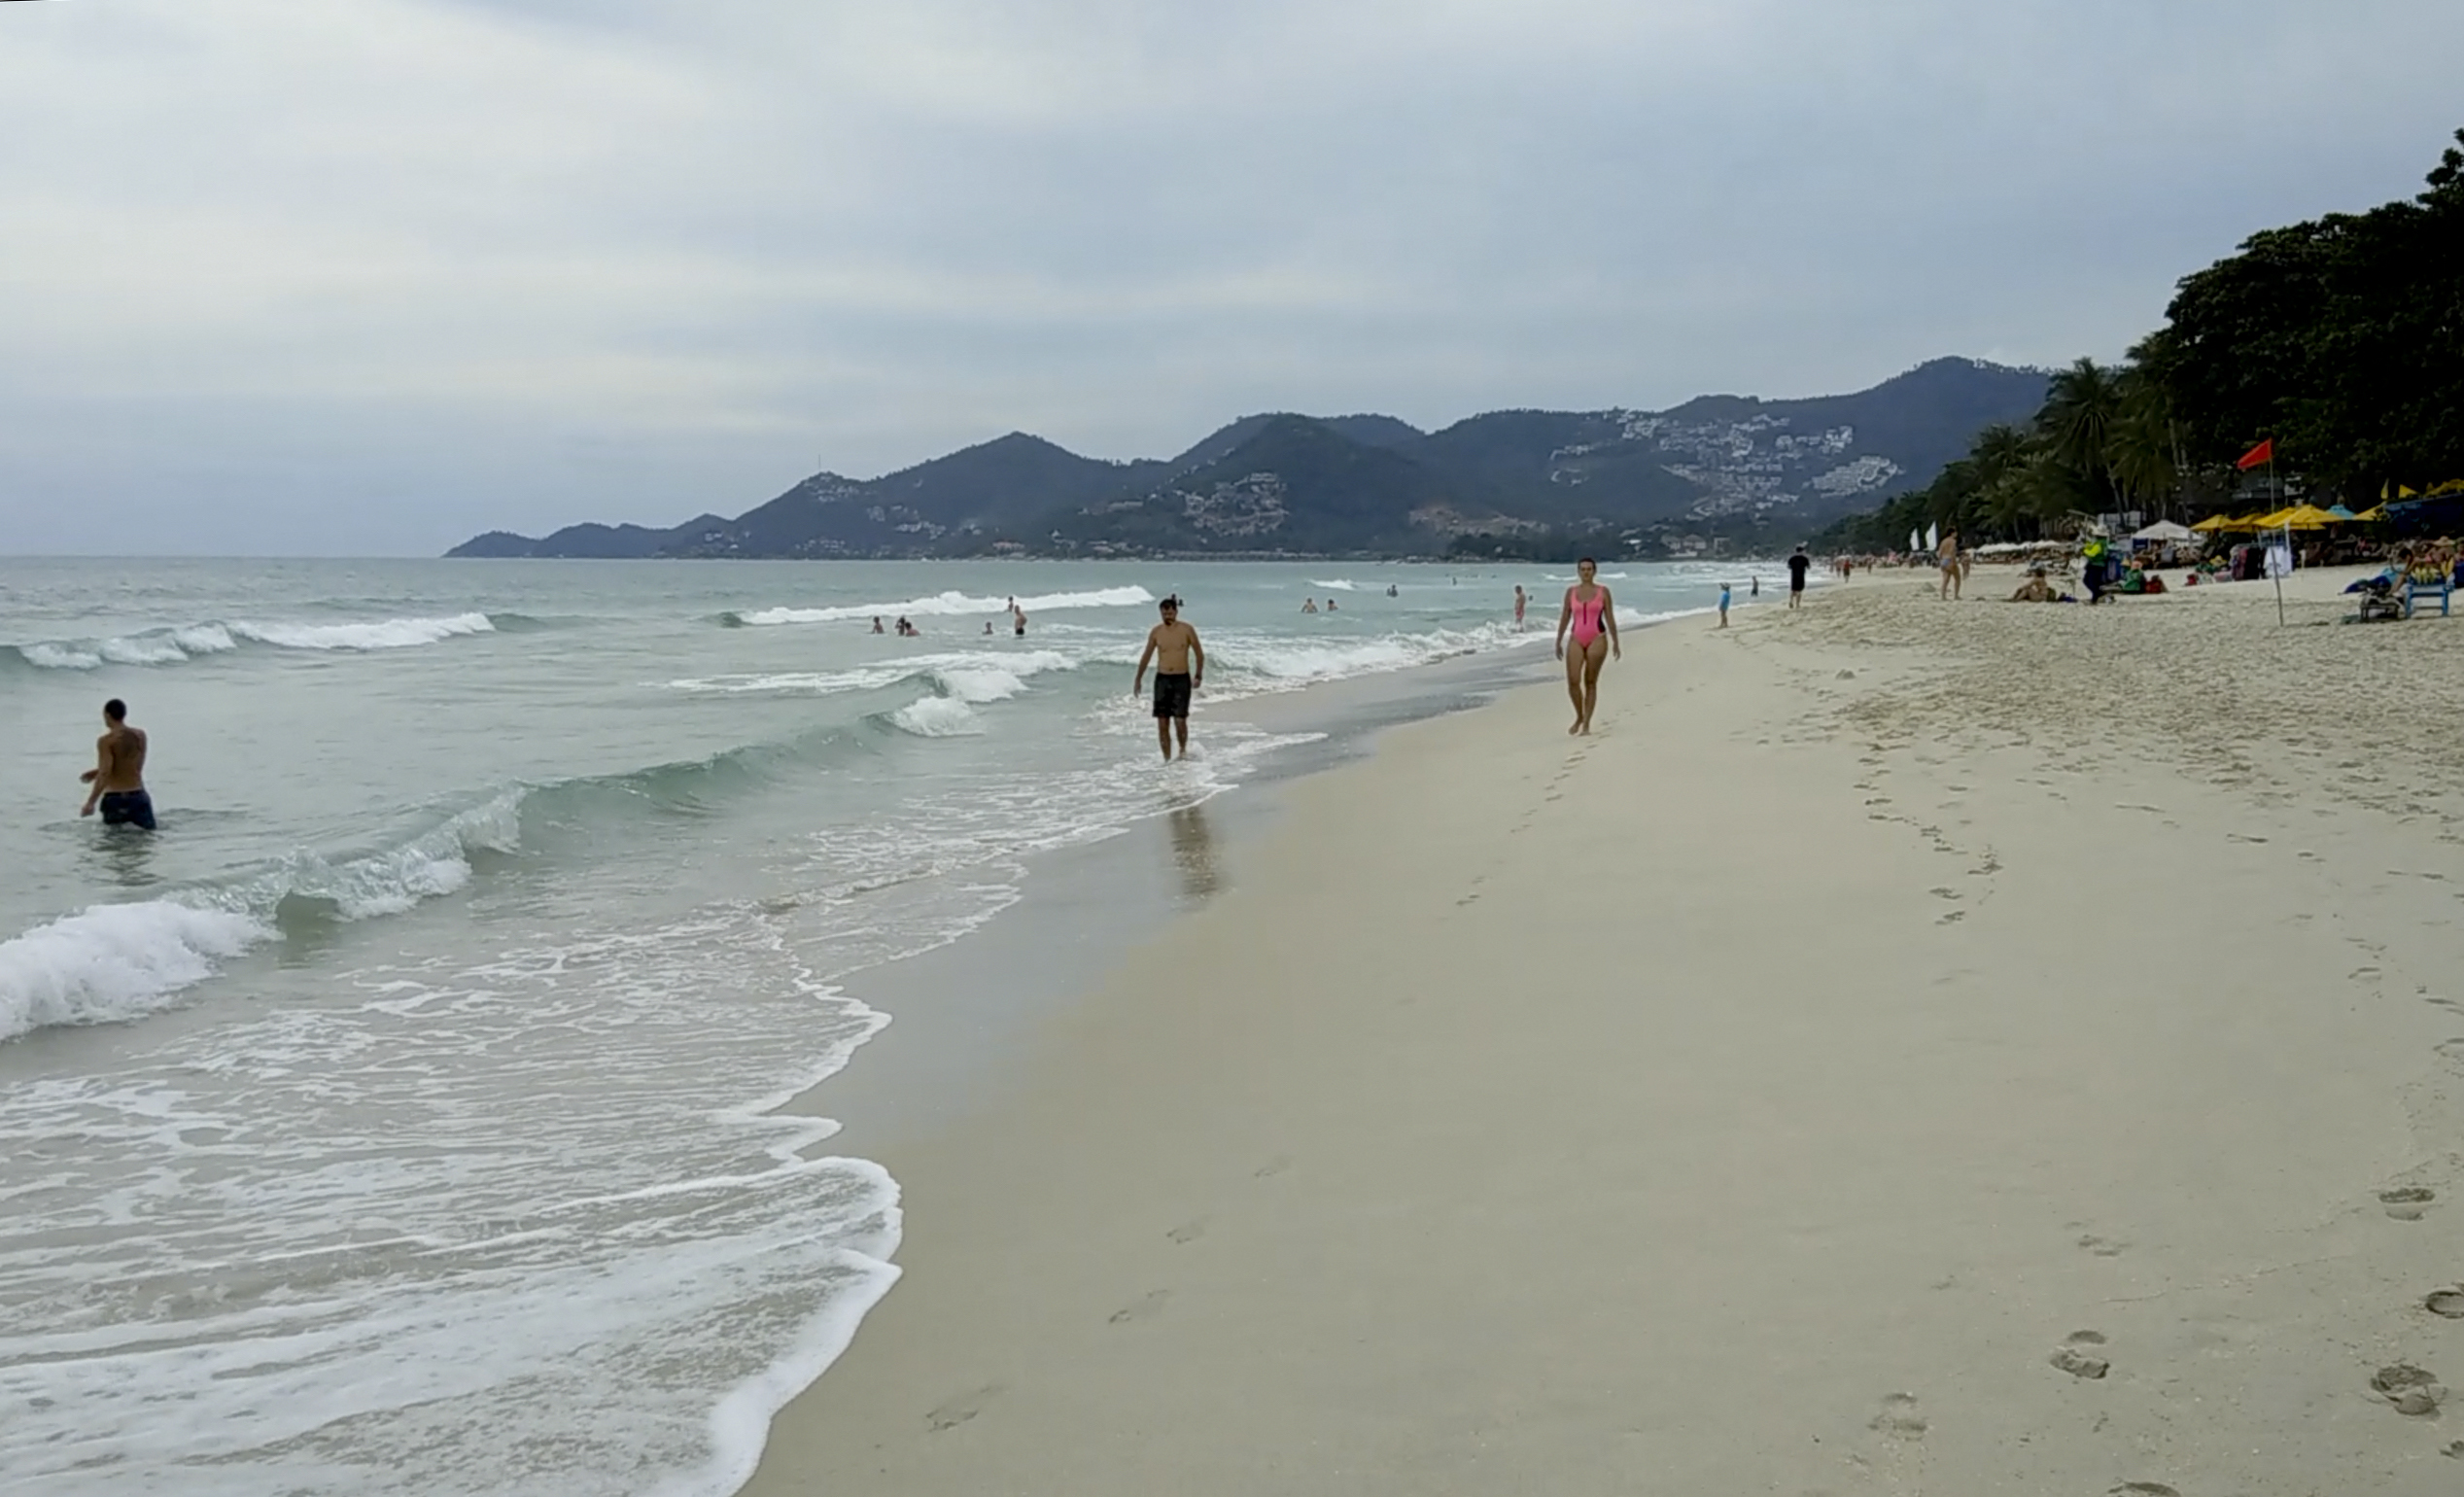 thai-beach-resorts-braced-for-tropical-storm-oxford-mail-2 Thai beach resorts braced for tropical storm - Oxford Mail